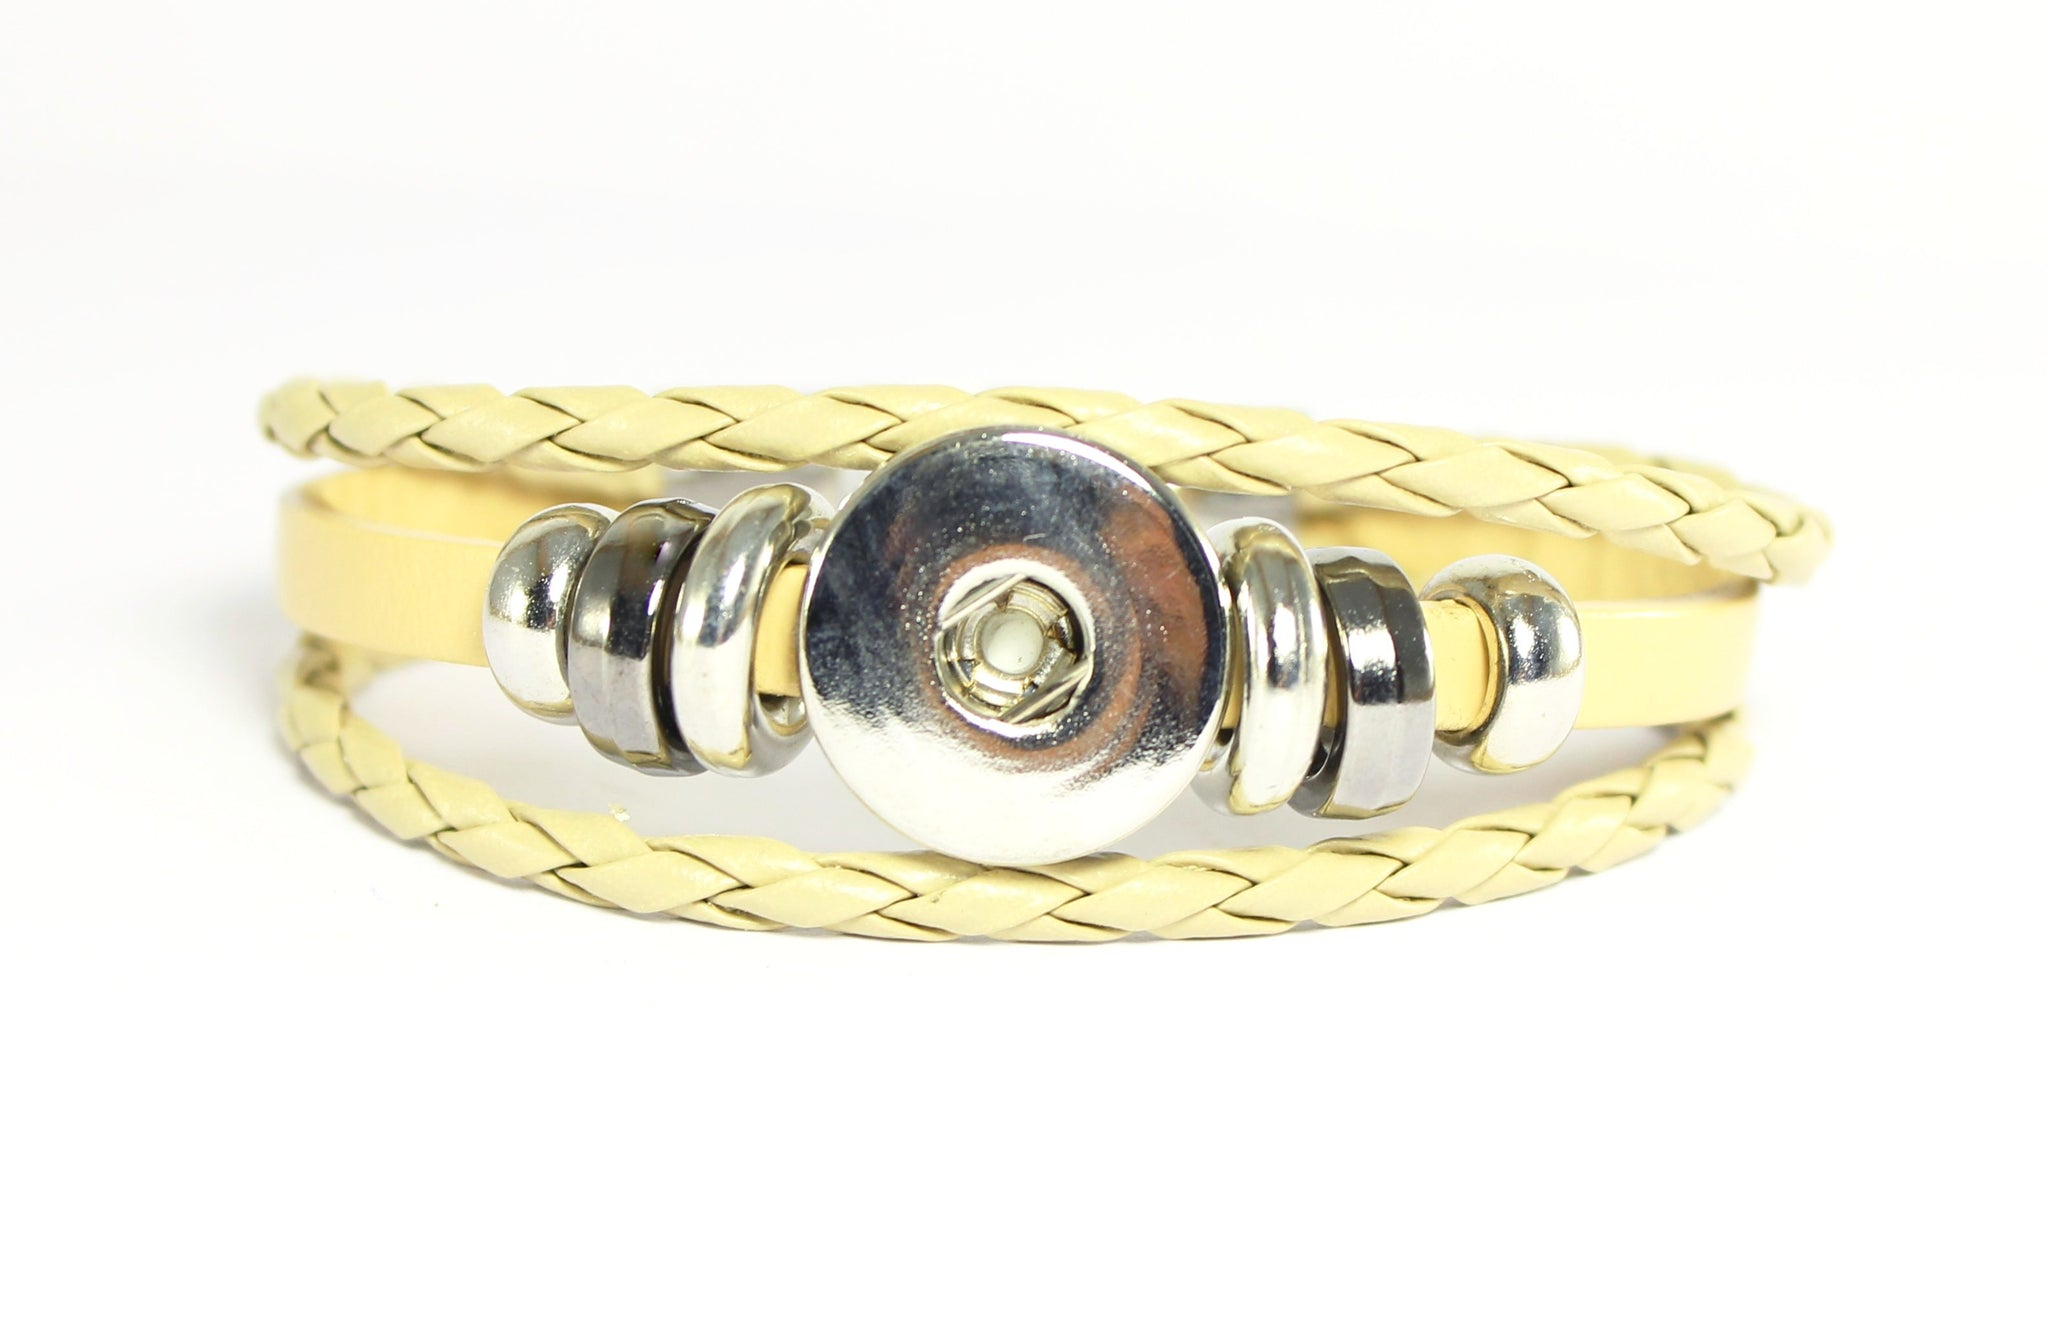 Sparkle Snap- Latte Cream Leather and Hematite Bracelet